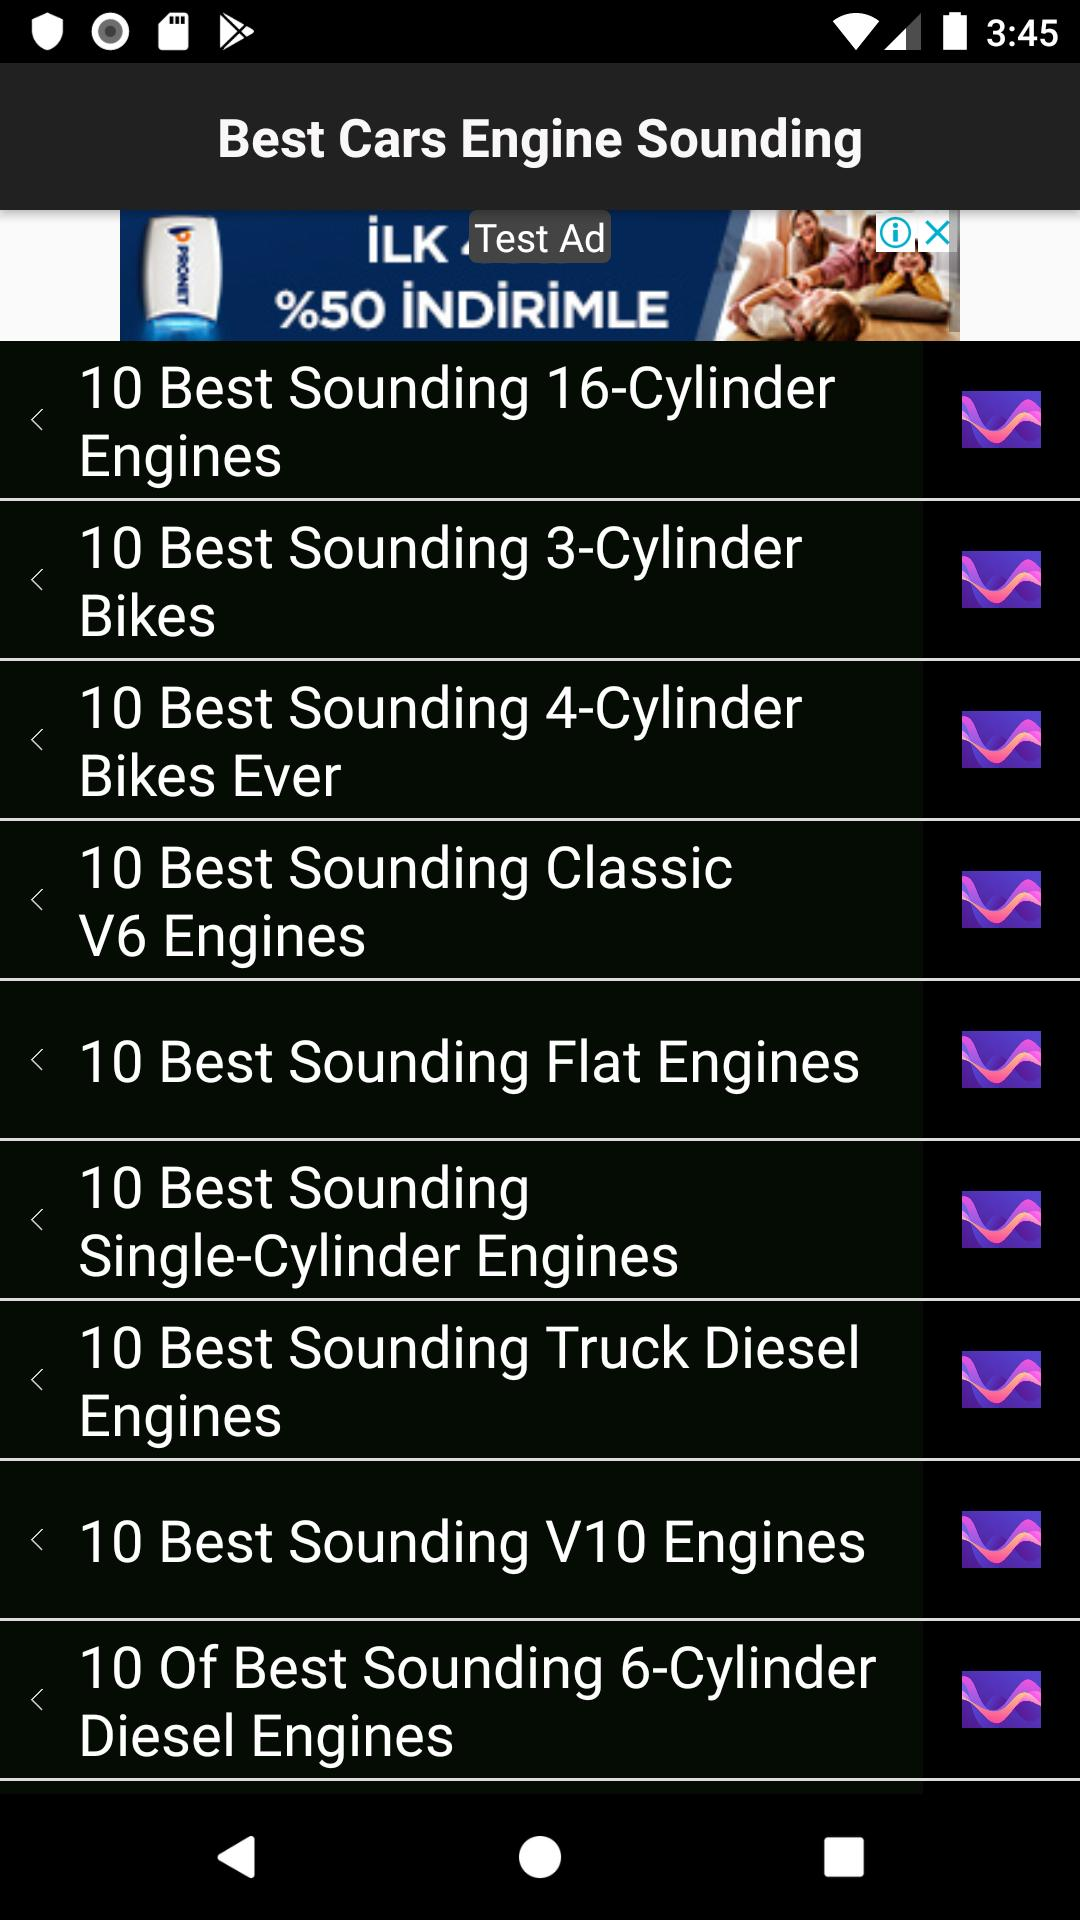 Cars Engine Sounding for Android - APK Download